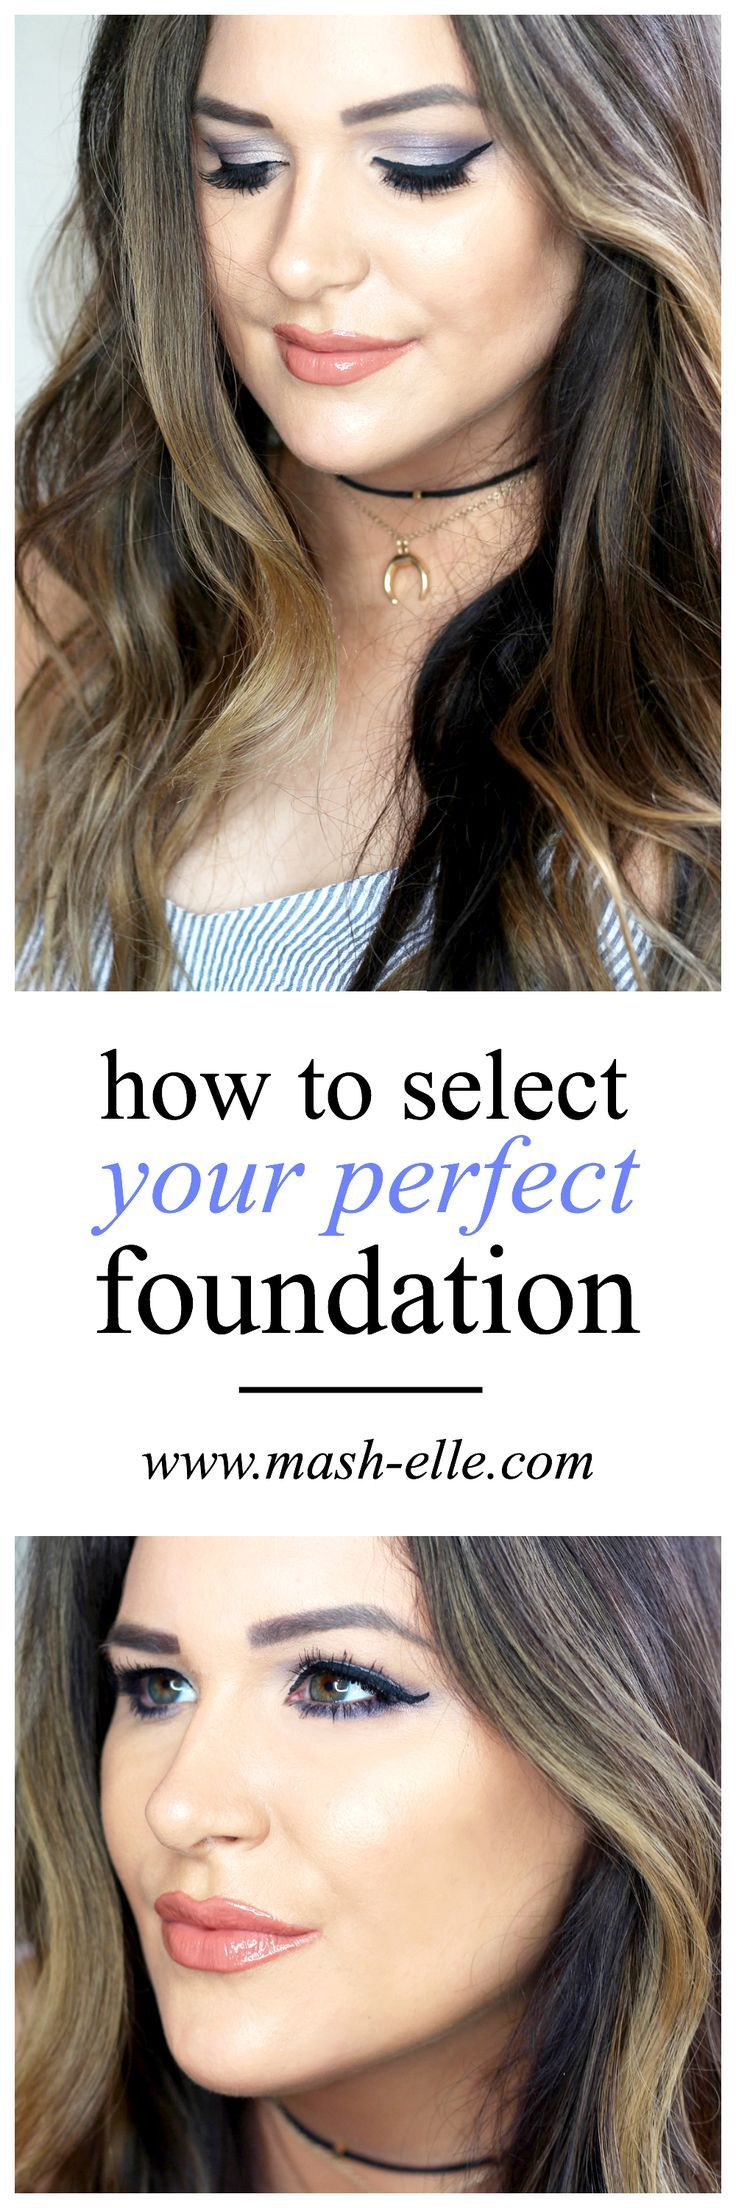 Find the foundation PERFECT for your skin! | Beauty blogger Mash Elle breaks down how to select your perfect shade of foundation to get your best match! Affordable makeup / airbrush makeup / beauty blogger